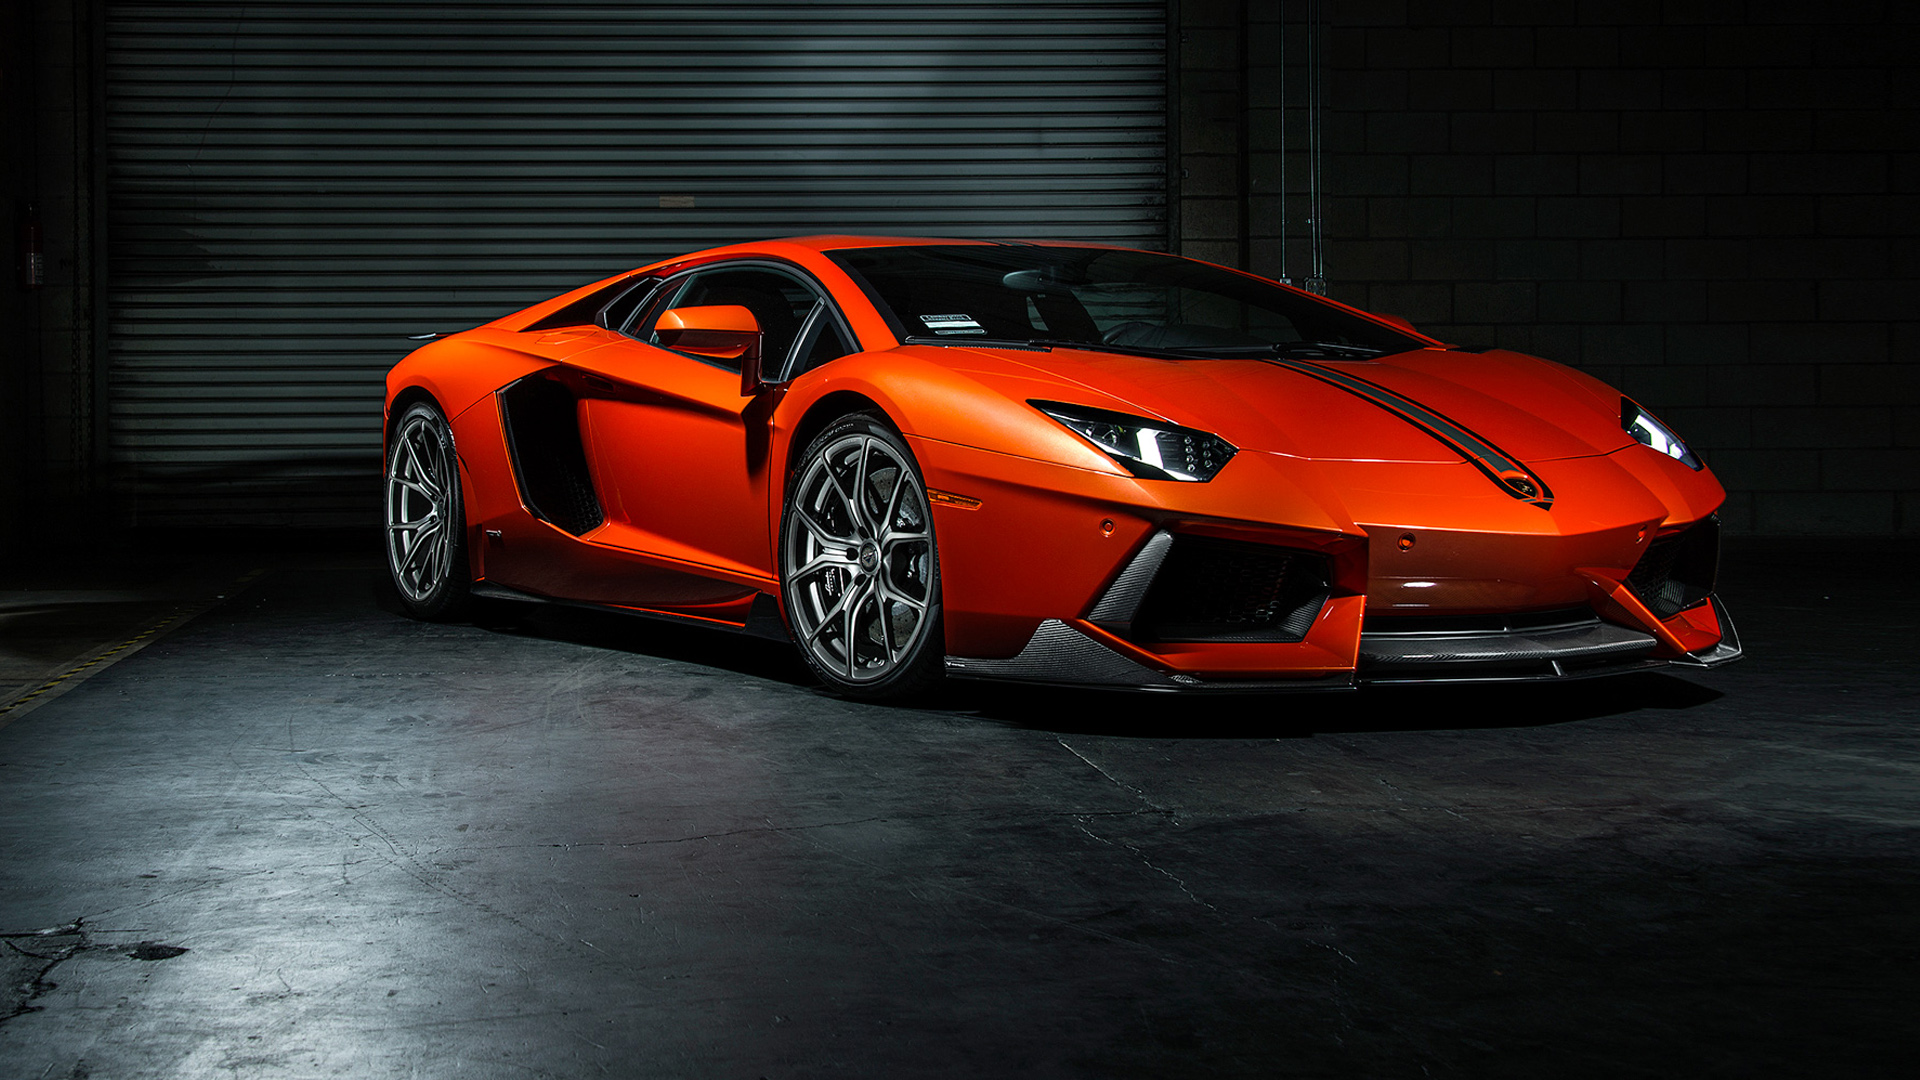 Lamborghini HD wallpaper for download in laptop and desktop